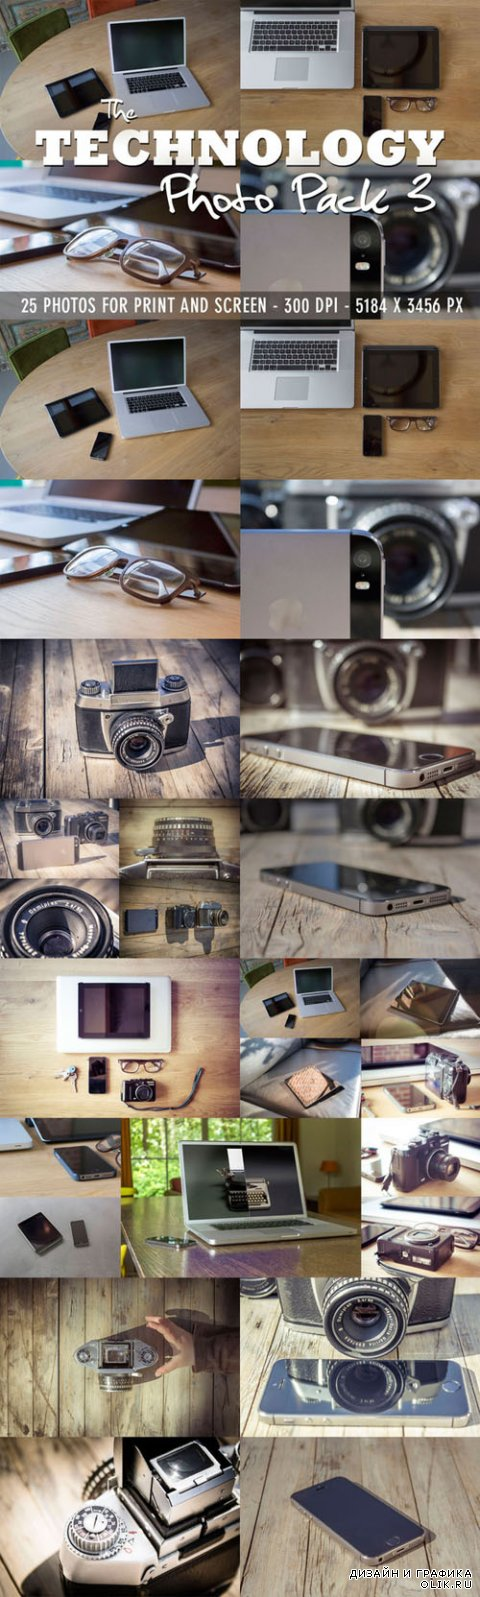 Technology Photo Pack 3 - Creativemarket 264245